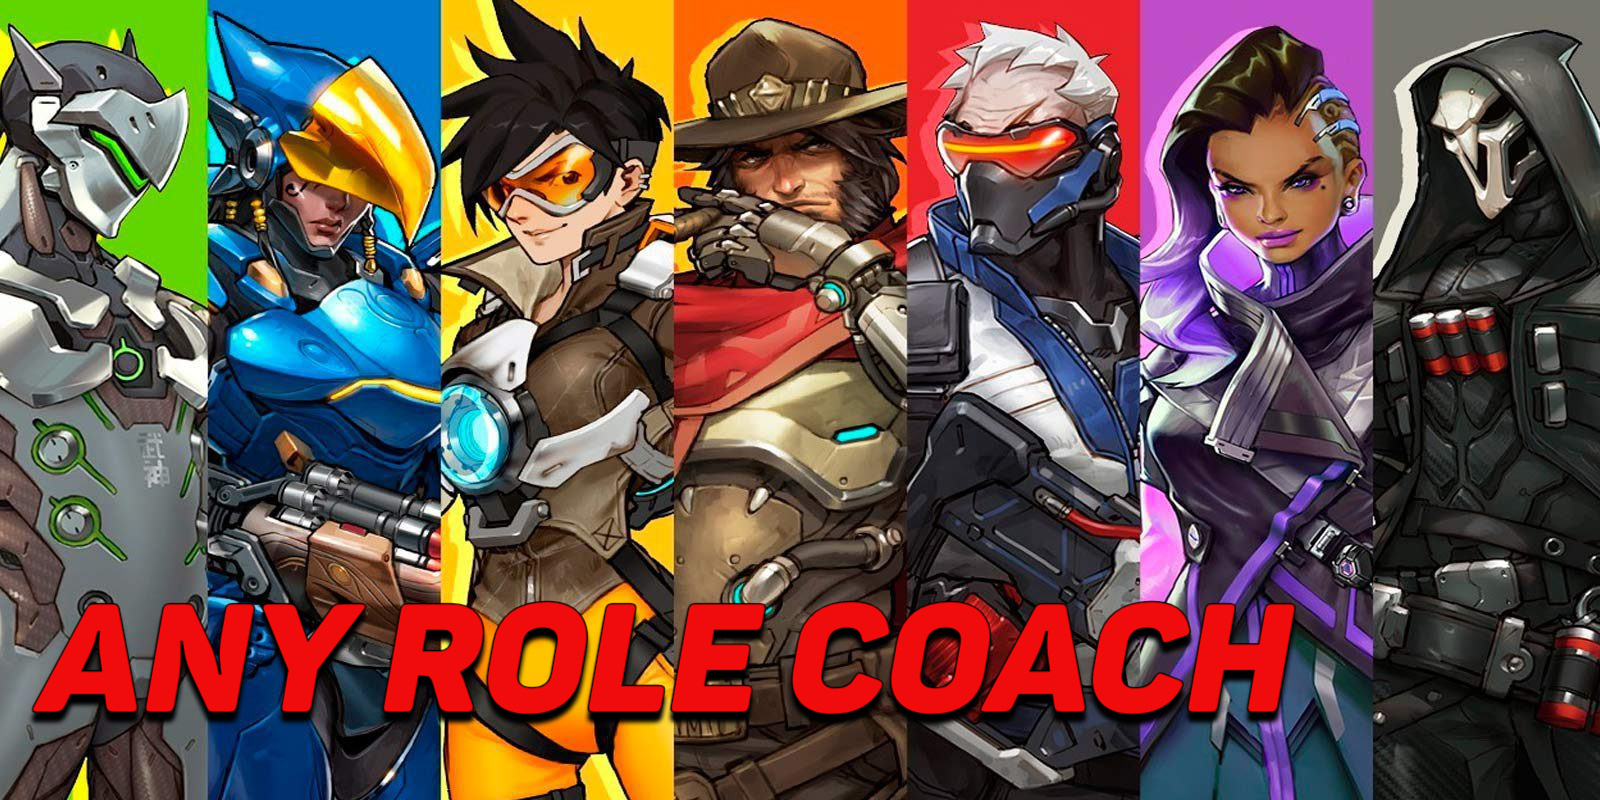 ANY ROLE COACH ThisIsHarley - e2p.com